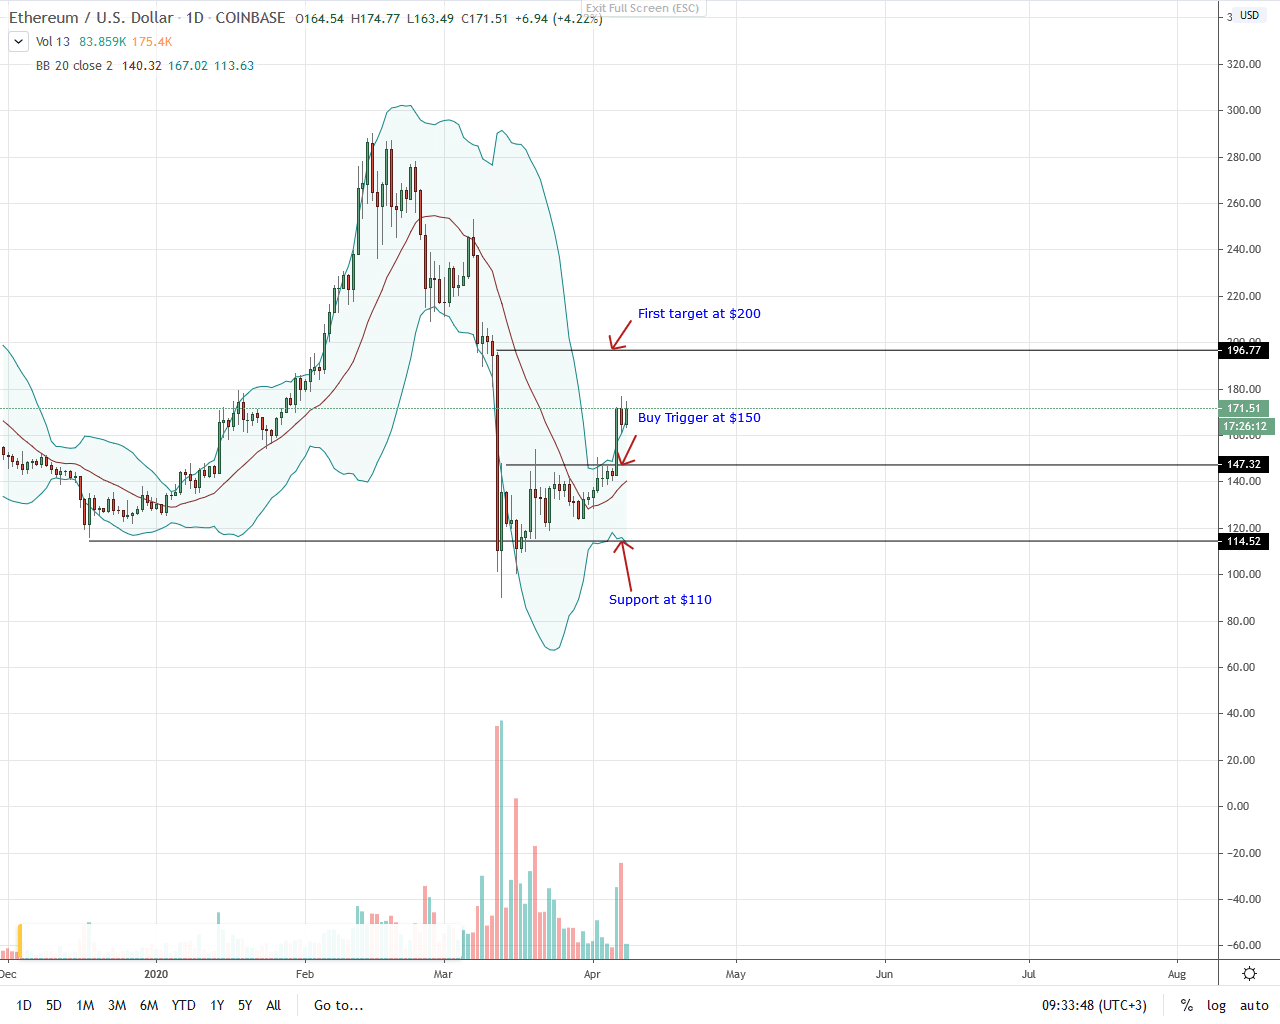 Ethereum Daily Chart for Apr 8